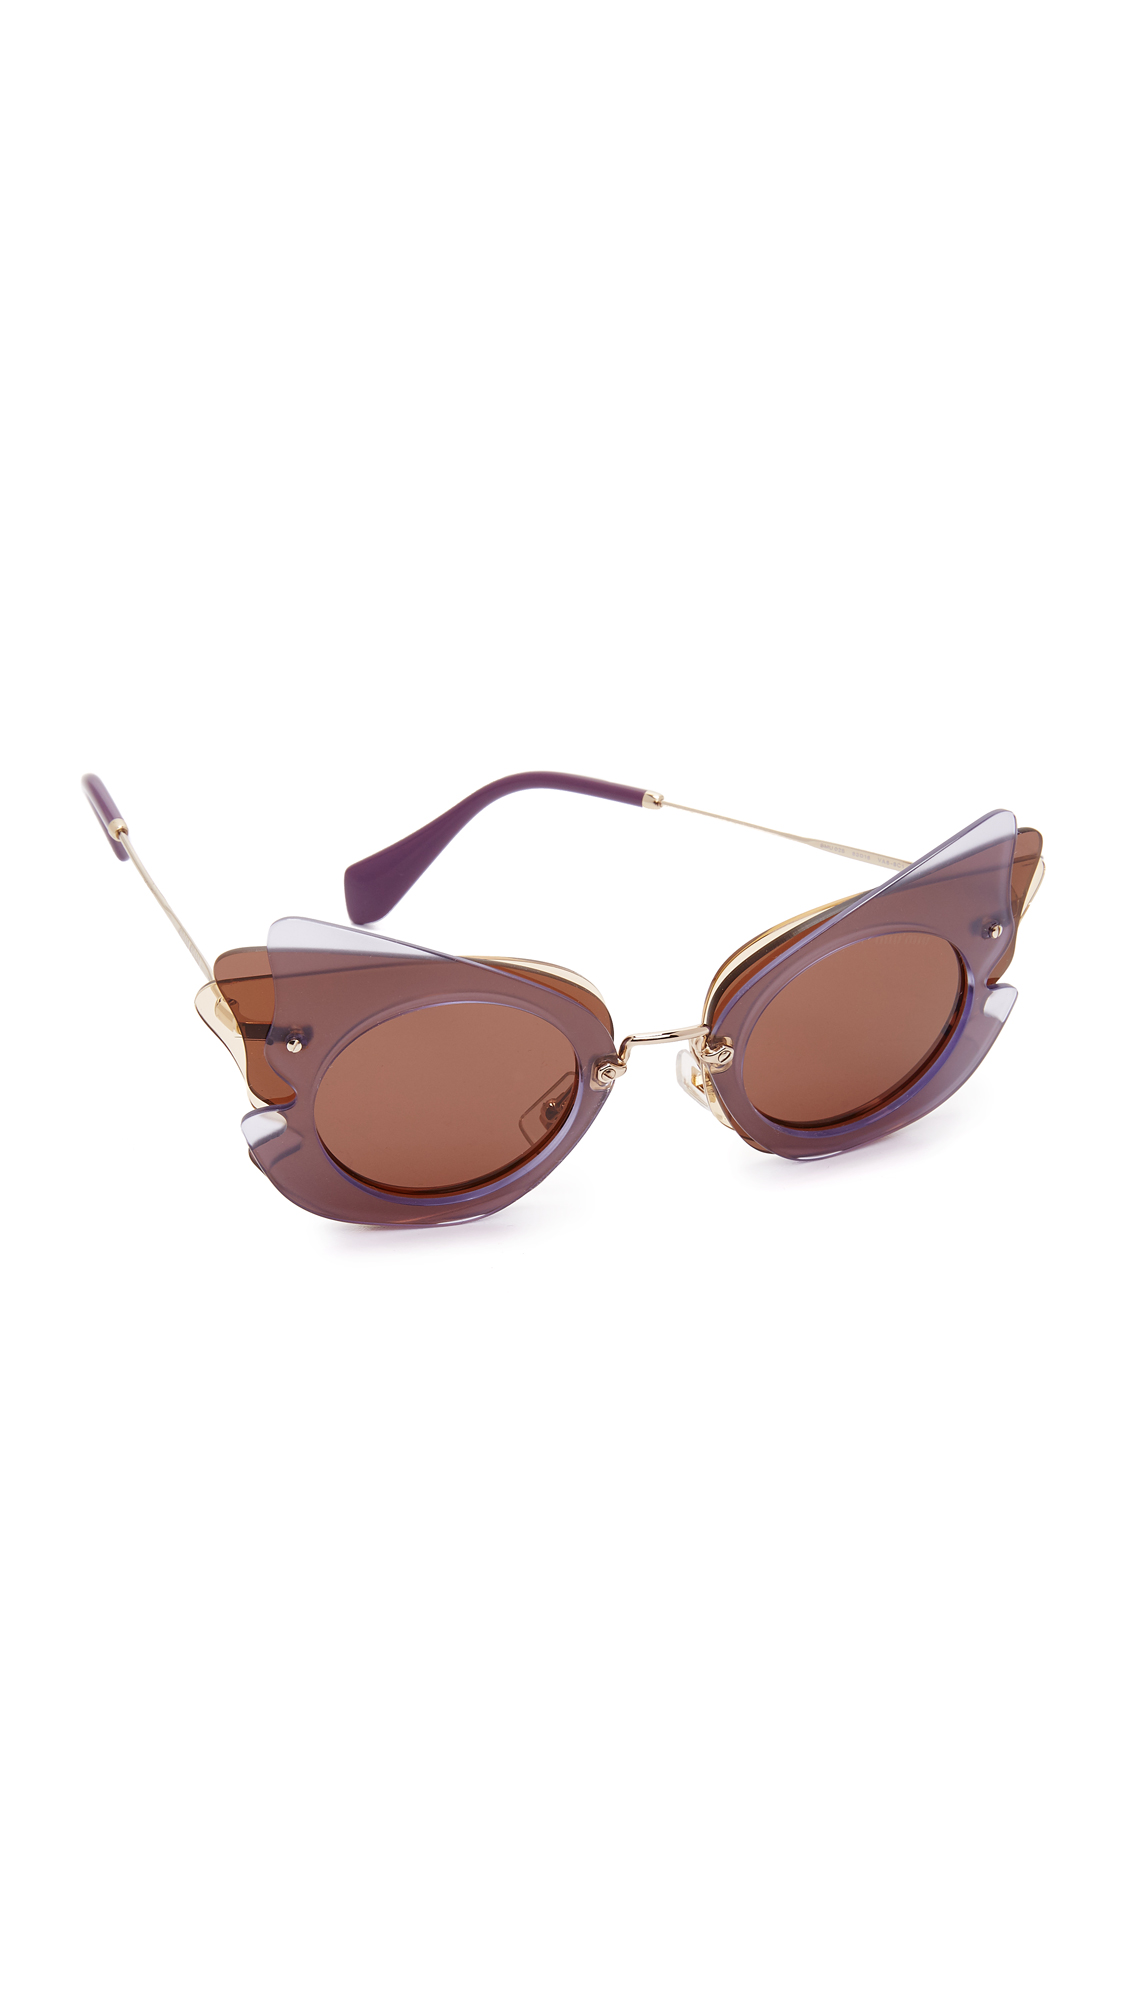 Overlapping lenses create a layered, butterfly inspired effect on these daring Miu Miu sunglasses. Slim arms. Soft pouch, hard case, and cleaning cloth included. Cateye frame. Non polarized lenses. Made in Italy. Measurements Width: 6in / 15.5cm